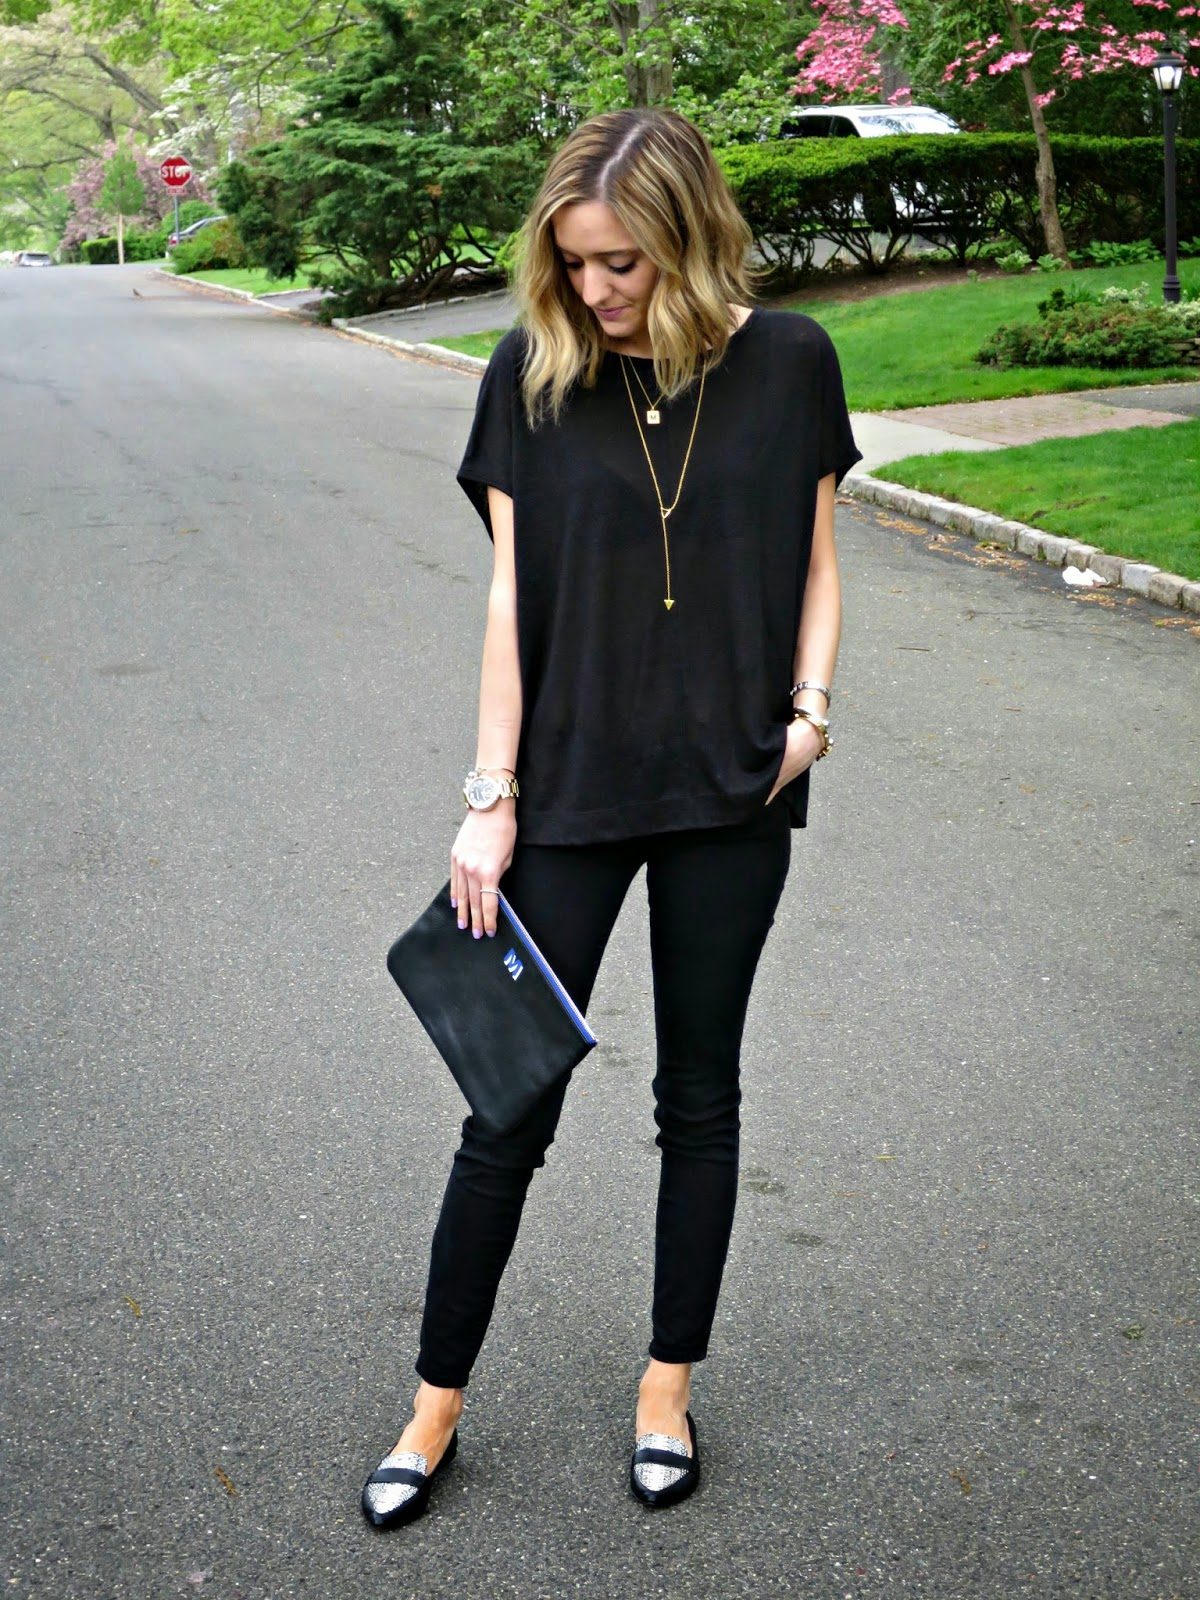 black outfit with gold jewelry